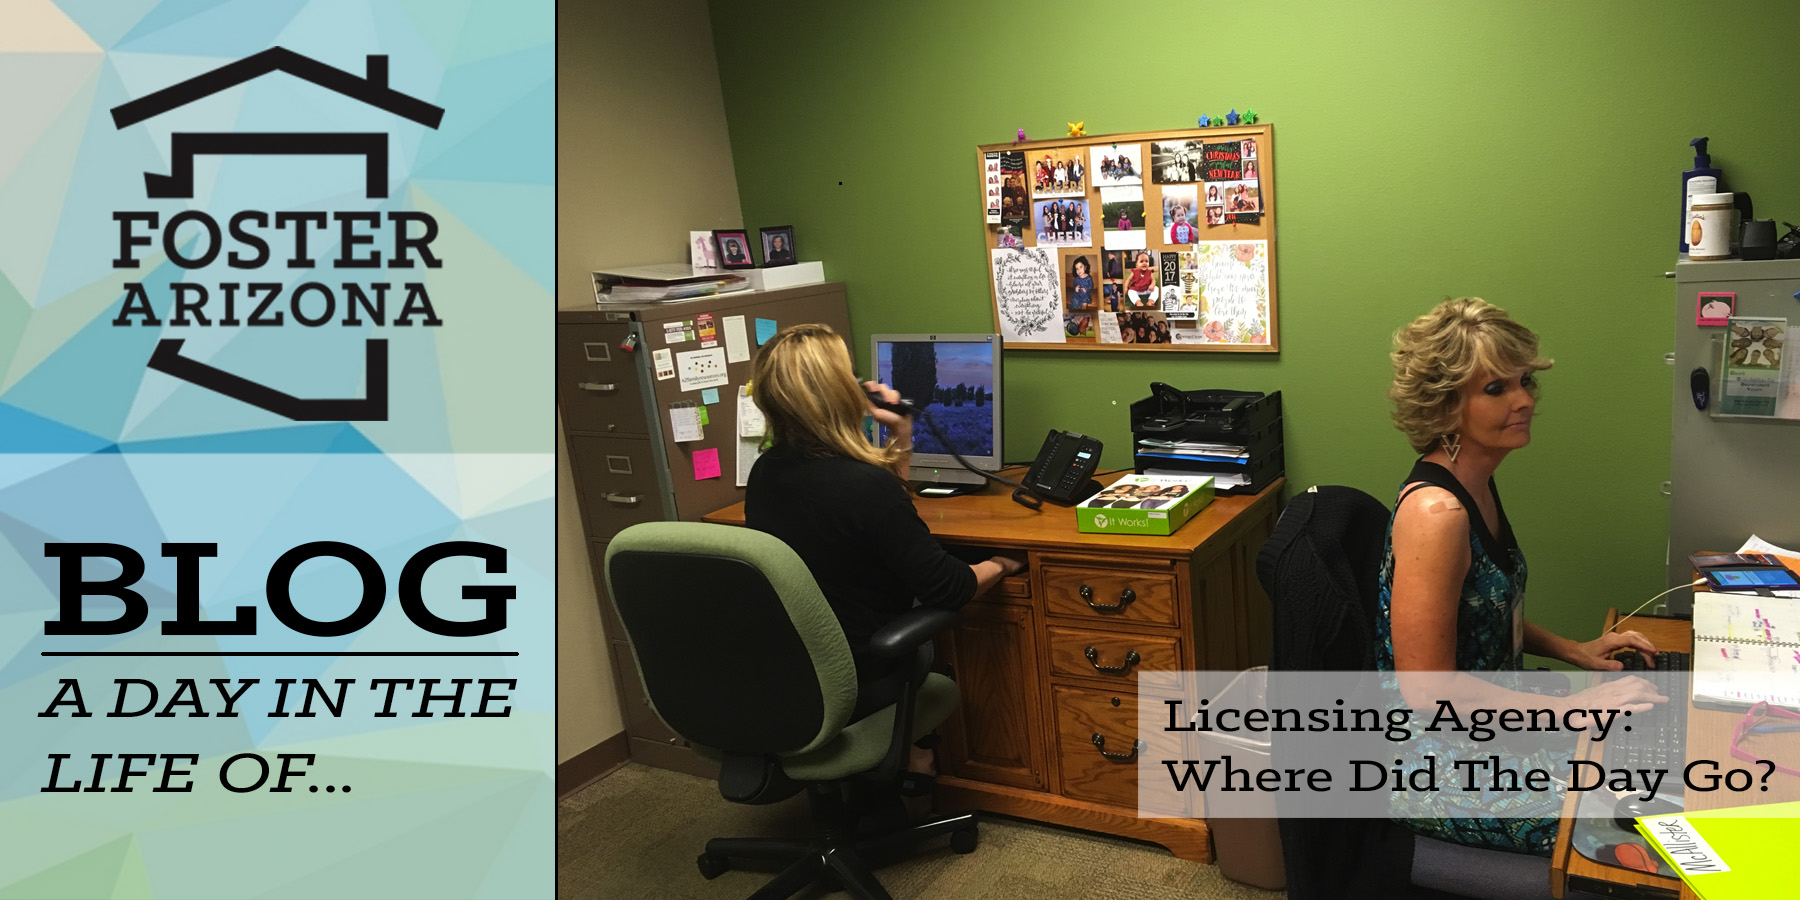 A Day In The Life Of Licensing Specialist Foster Arizona